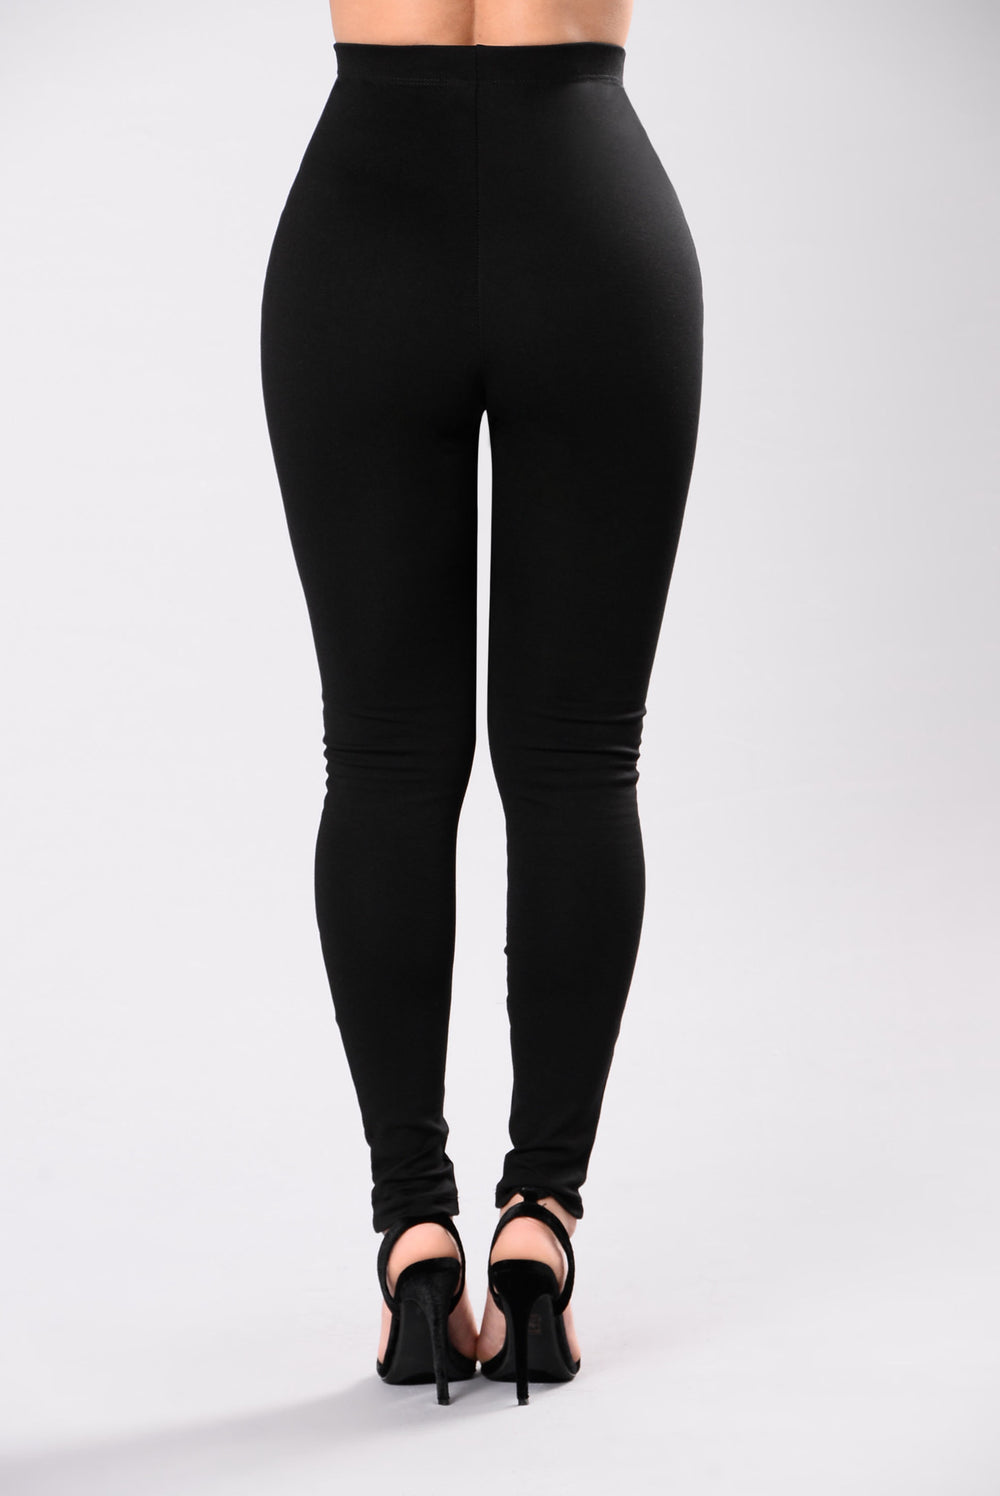 Black and see through leggings for going out